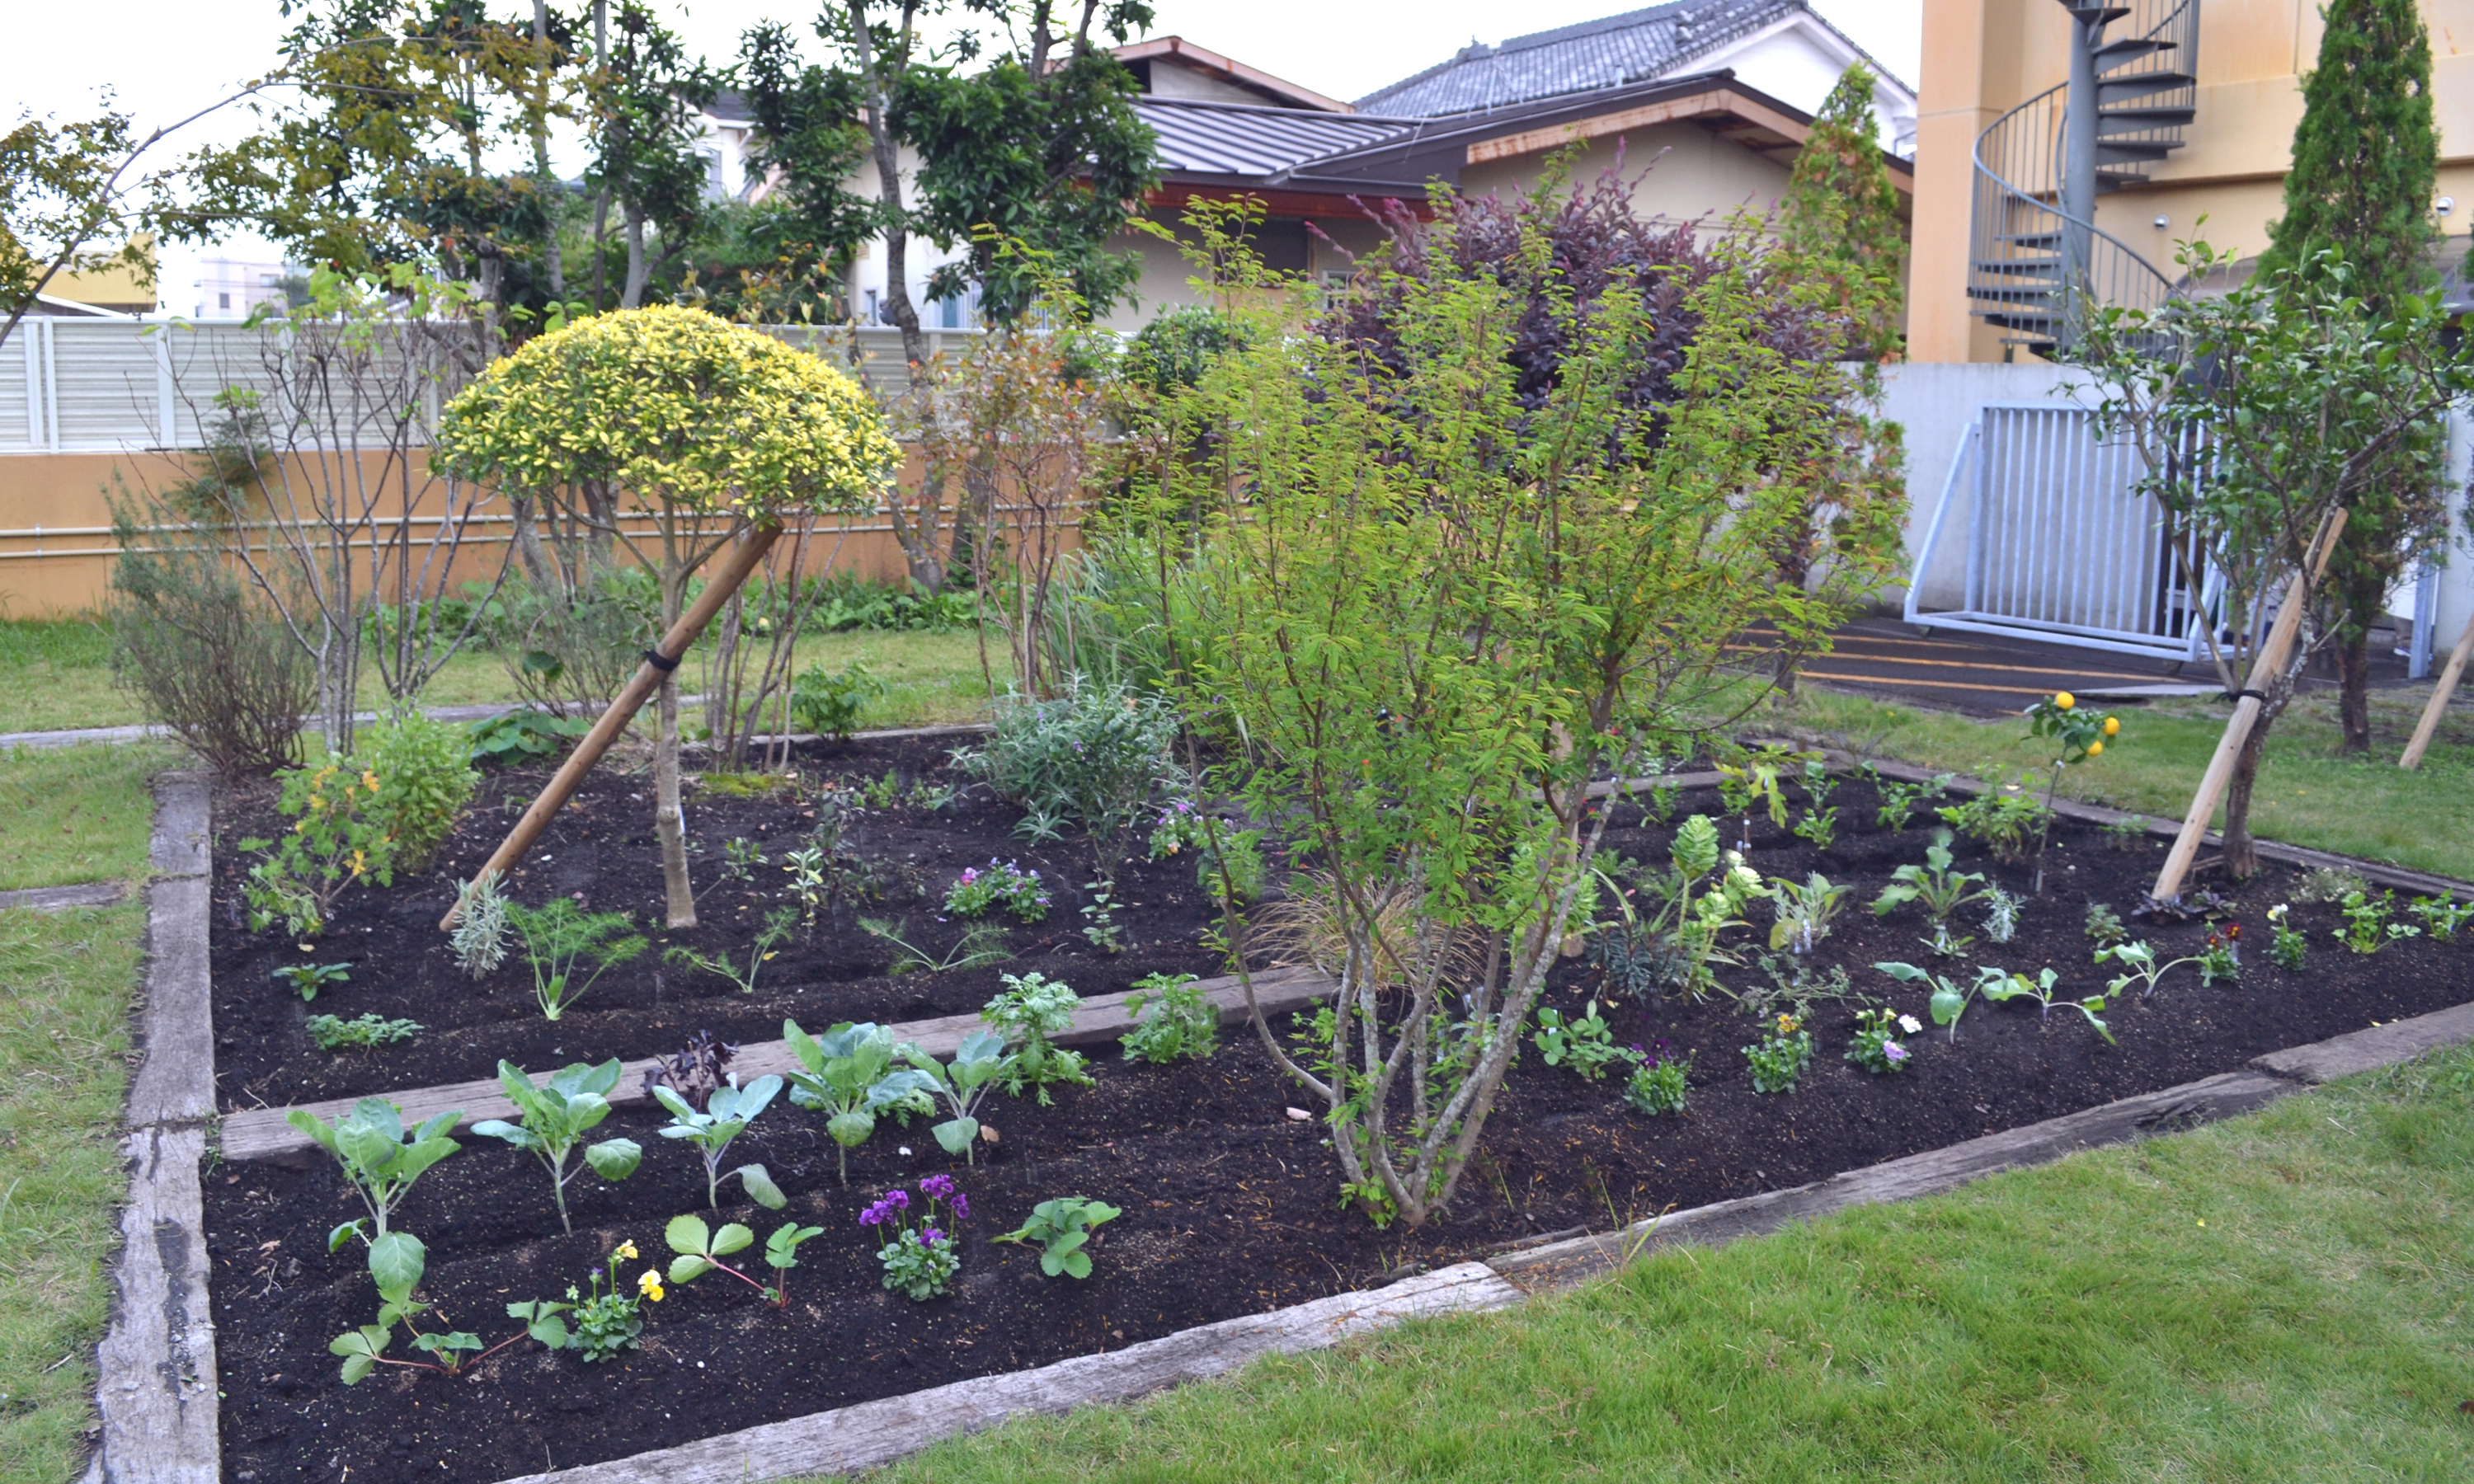 Relaxing garden for family